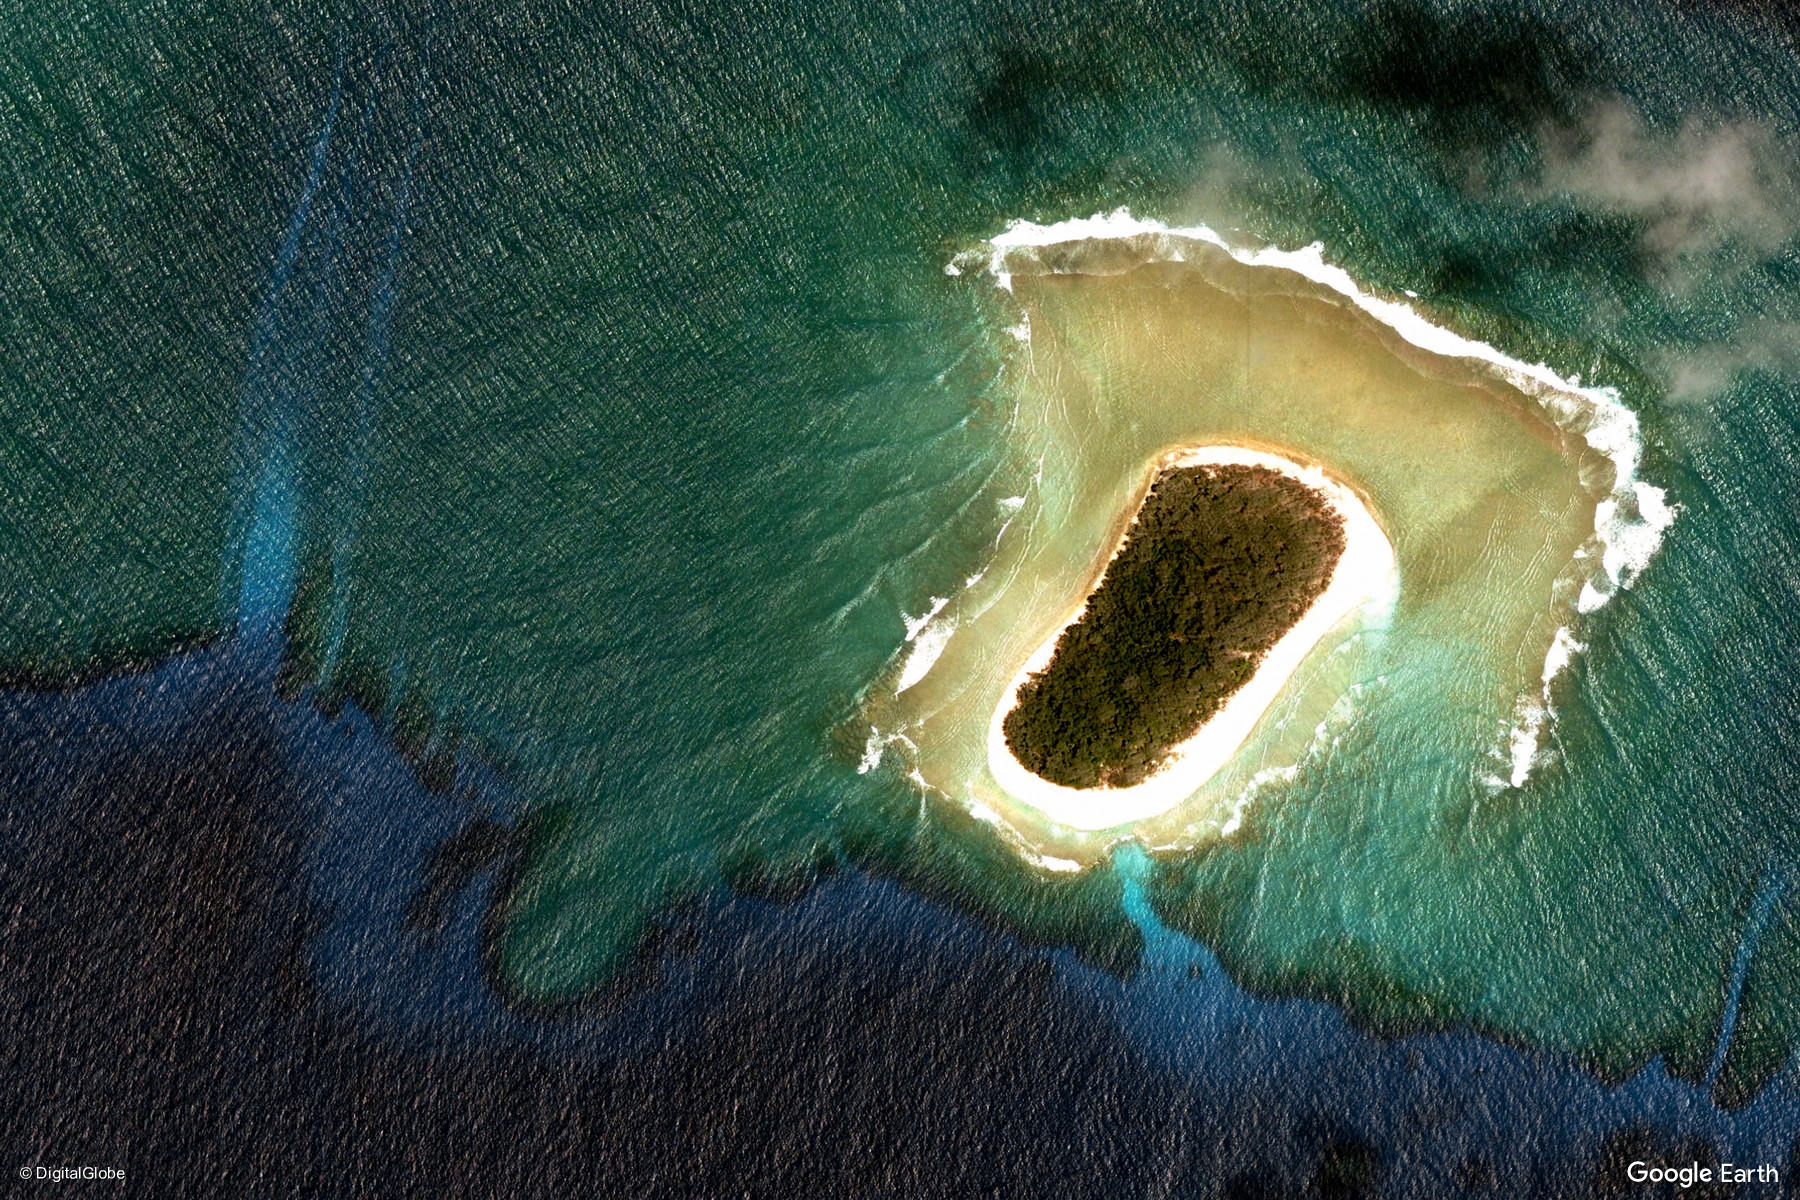 Kwajalein Atoll Marshall Islands Earth View From Google